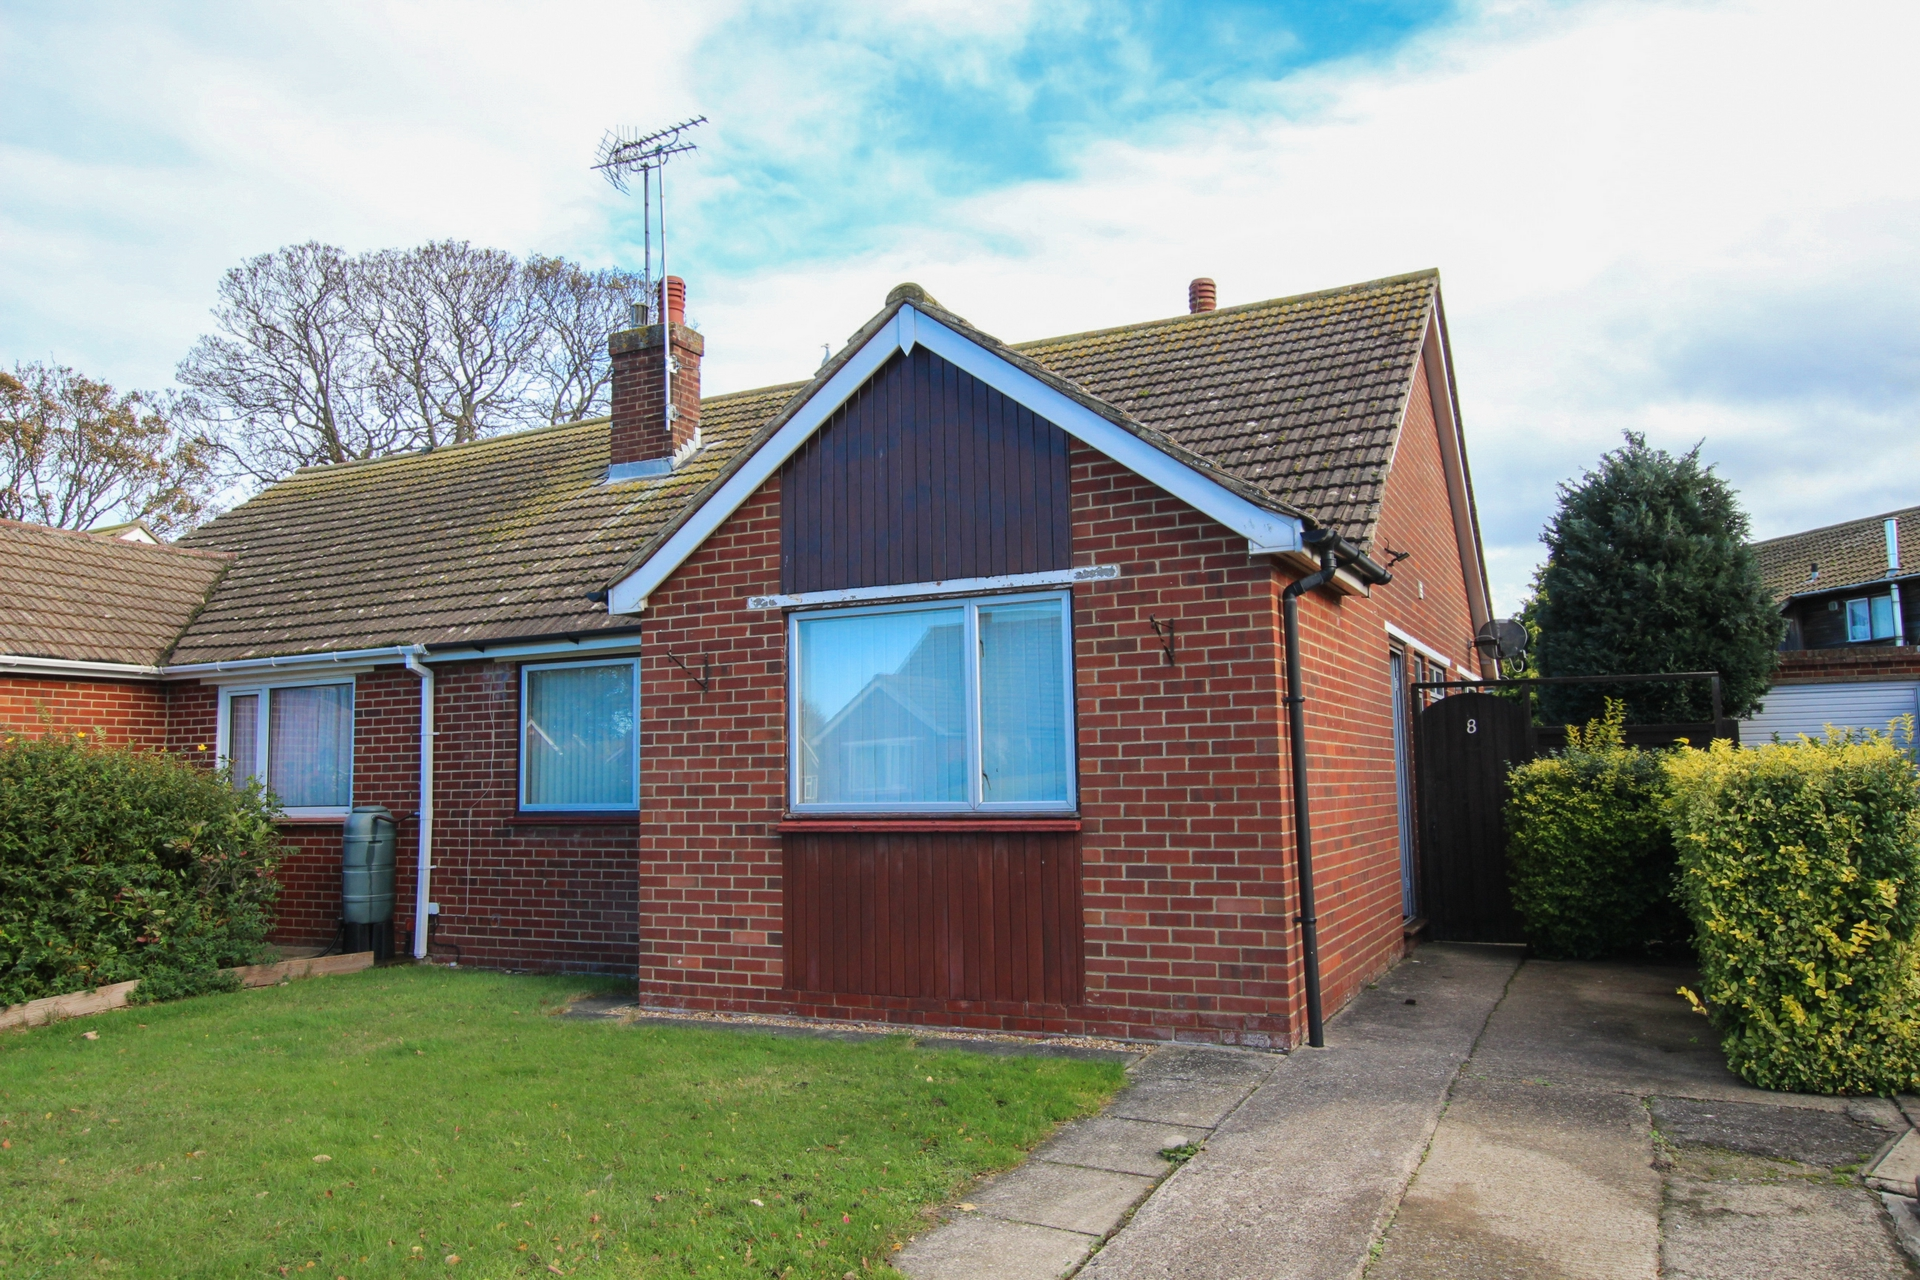 2 bed bungalow to rent in Maxine Gardens, St. Peters, CT10, CT10